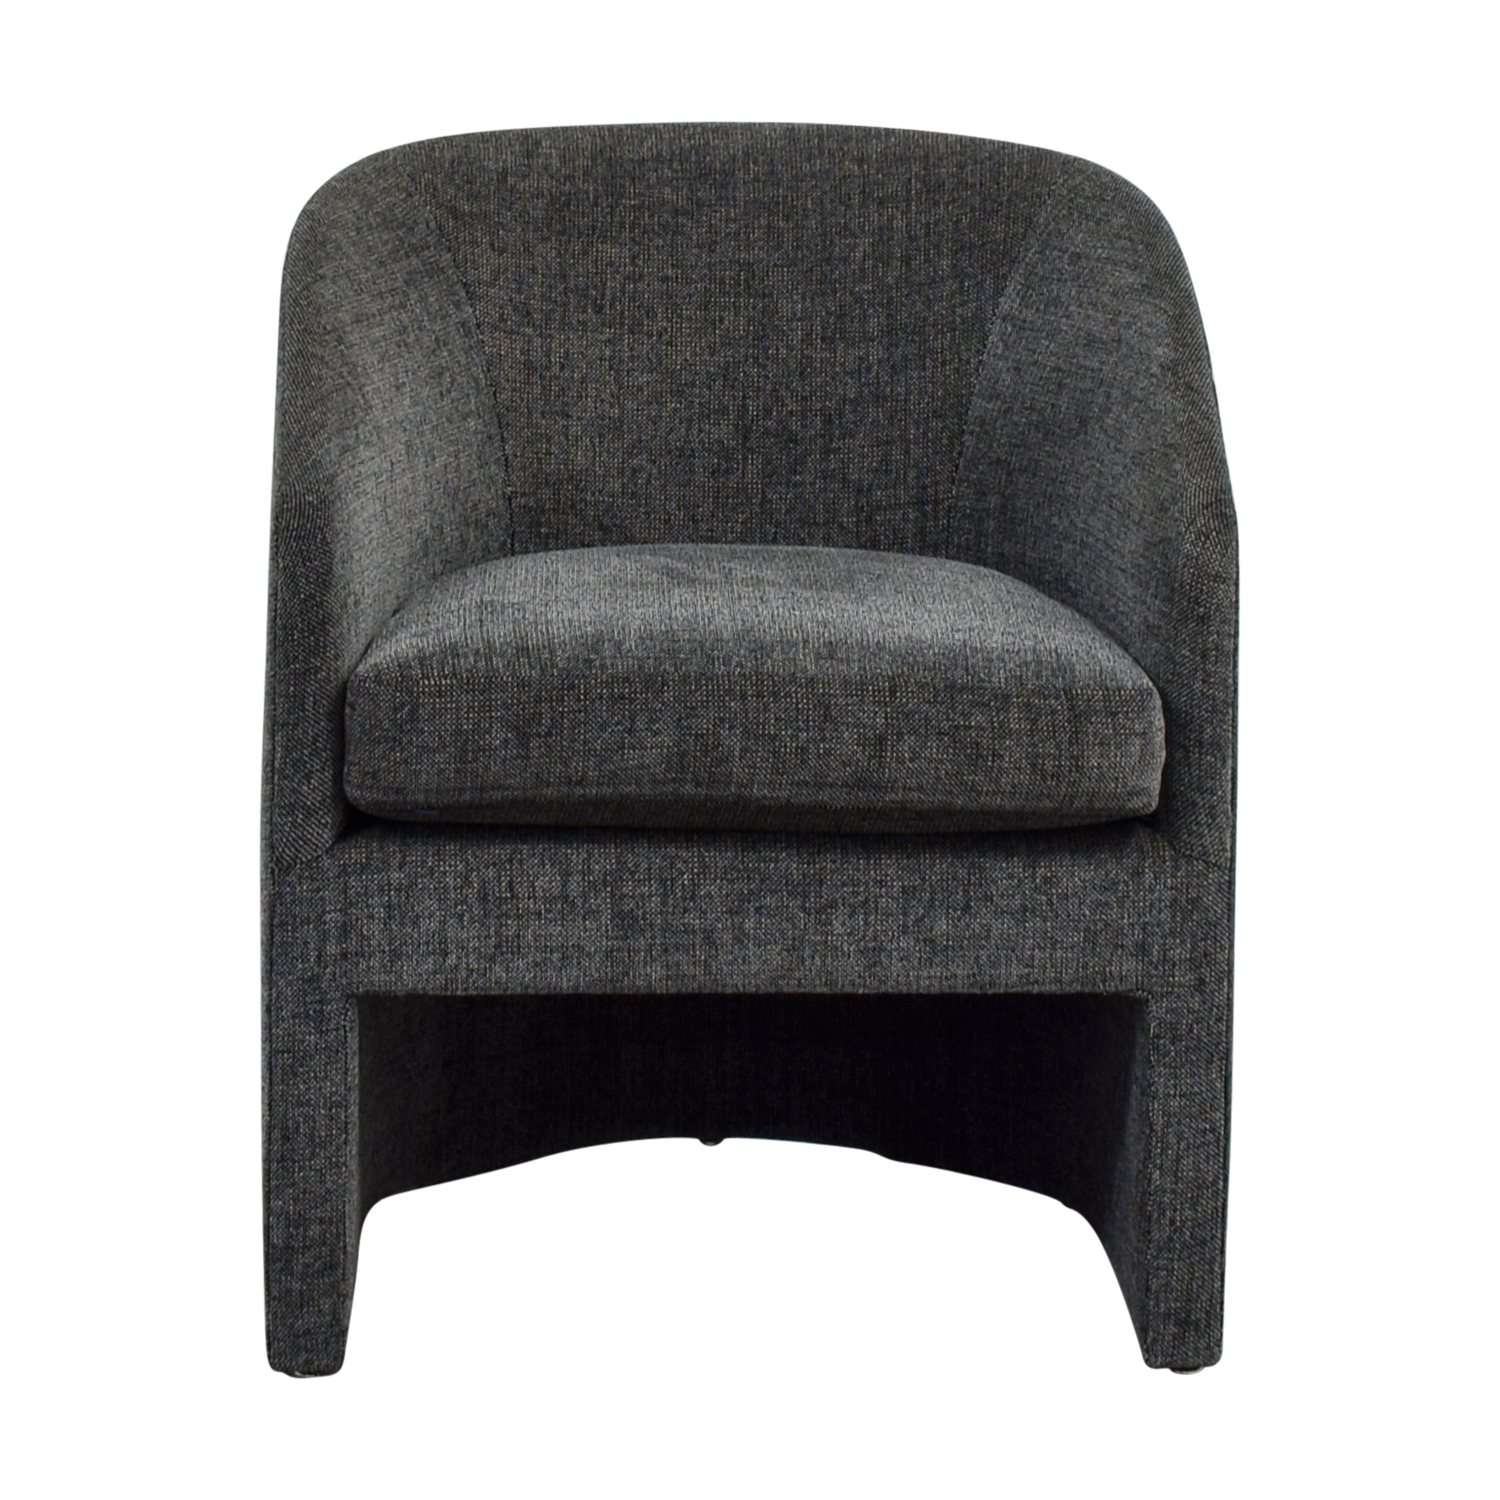 Donghia Navy Tweed Barrel Chair / Chairs